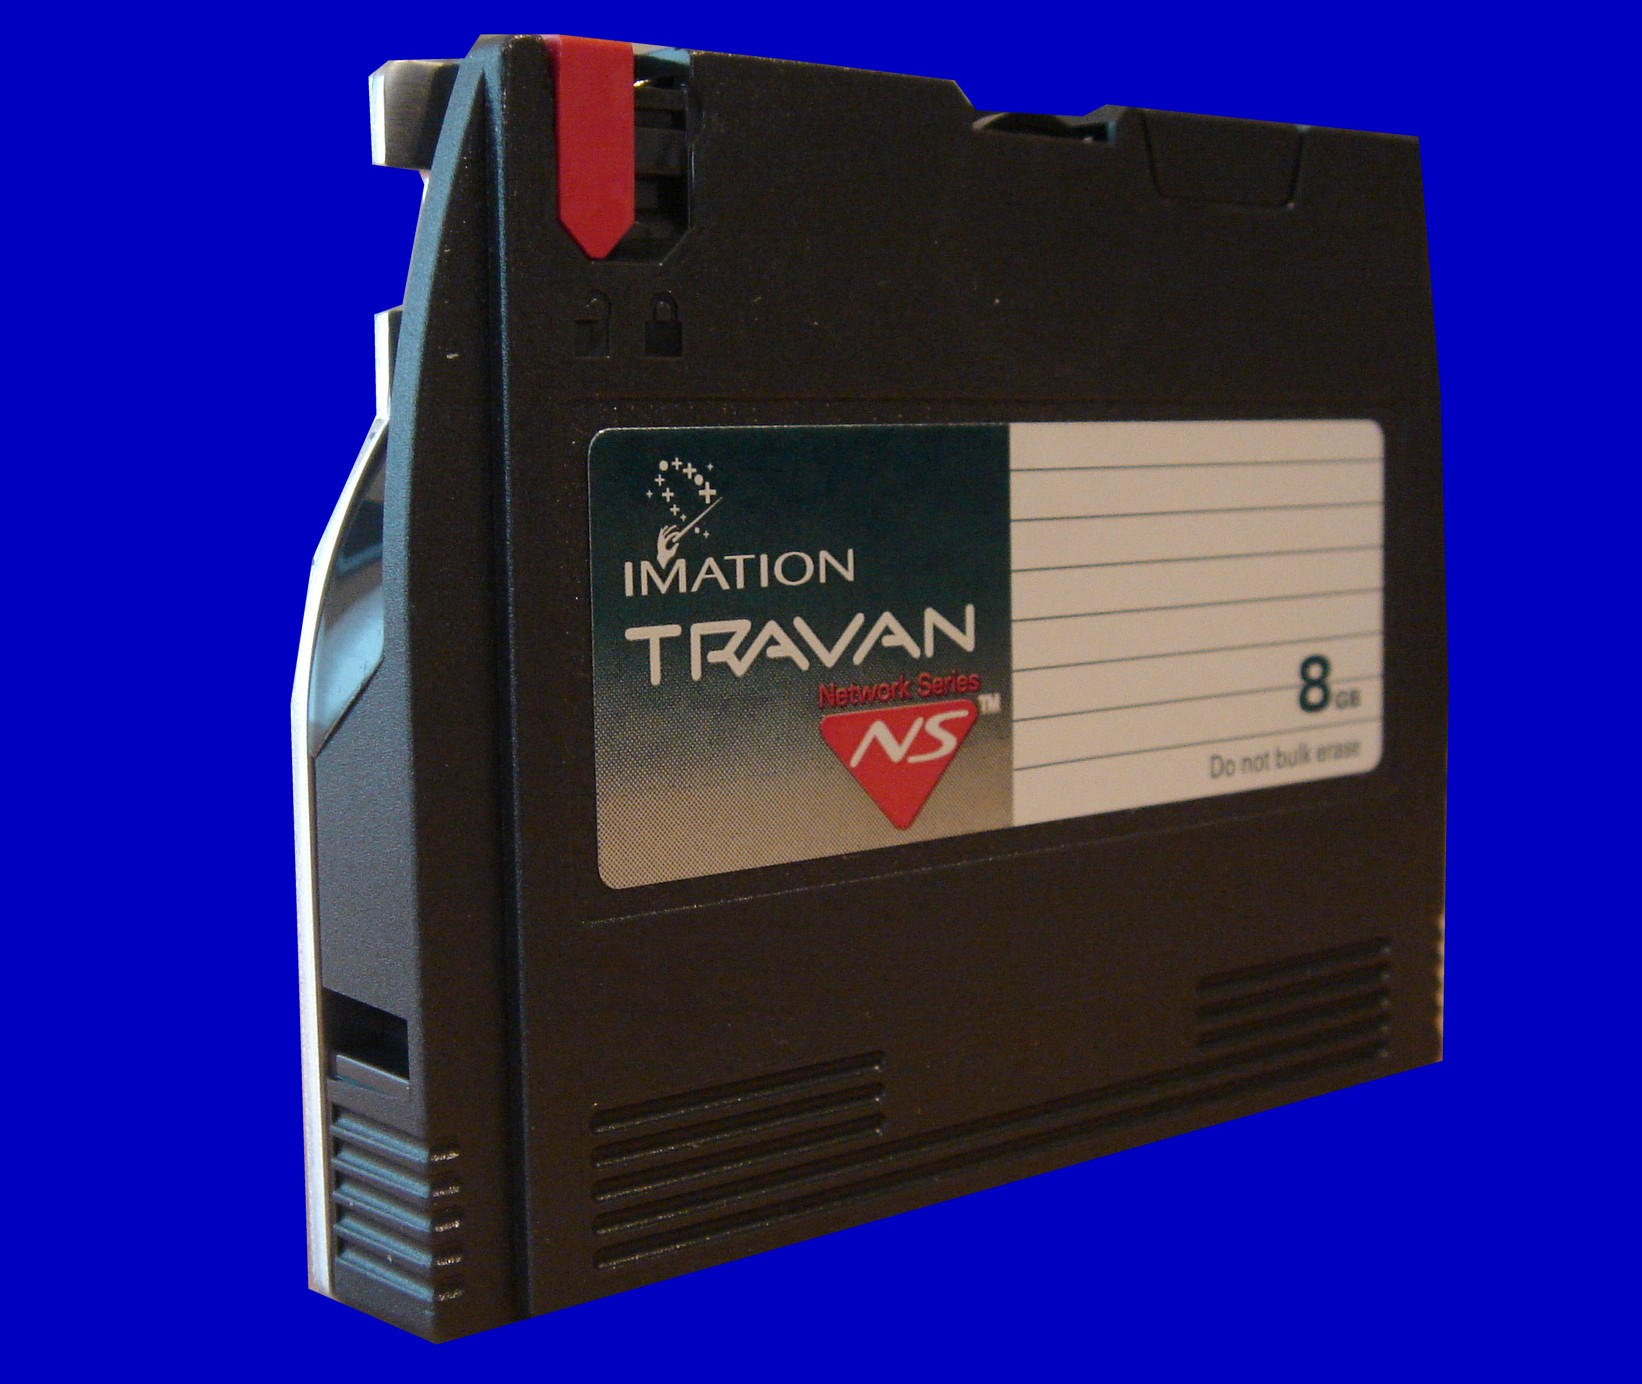 A QIC travan tape used in a Unix system to operate CNC machine.. The files were stored using tar so we restored them to a CD and made the files readable on a Windows PC.